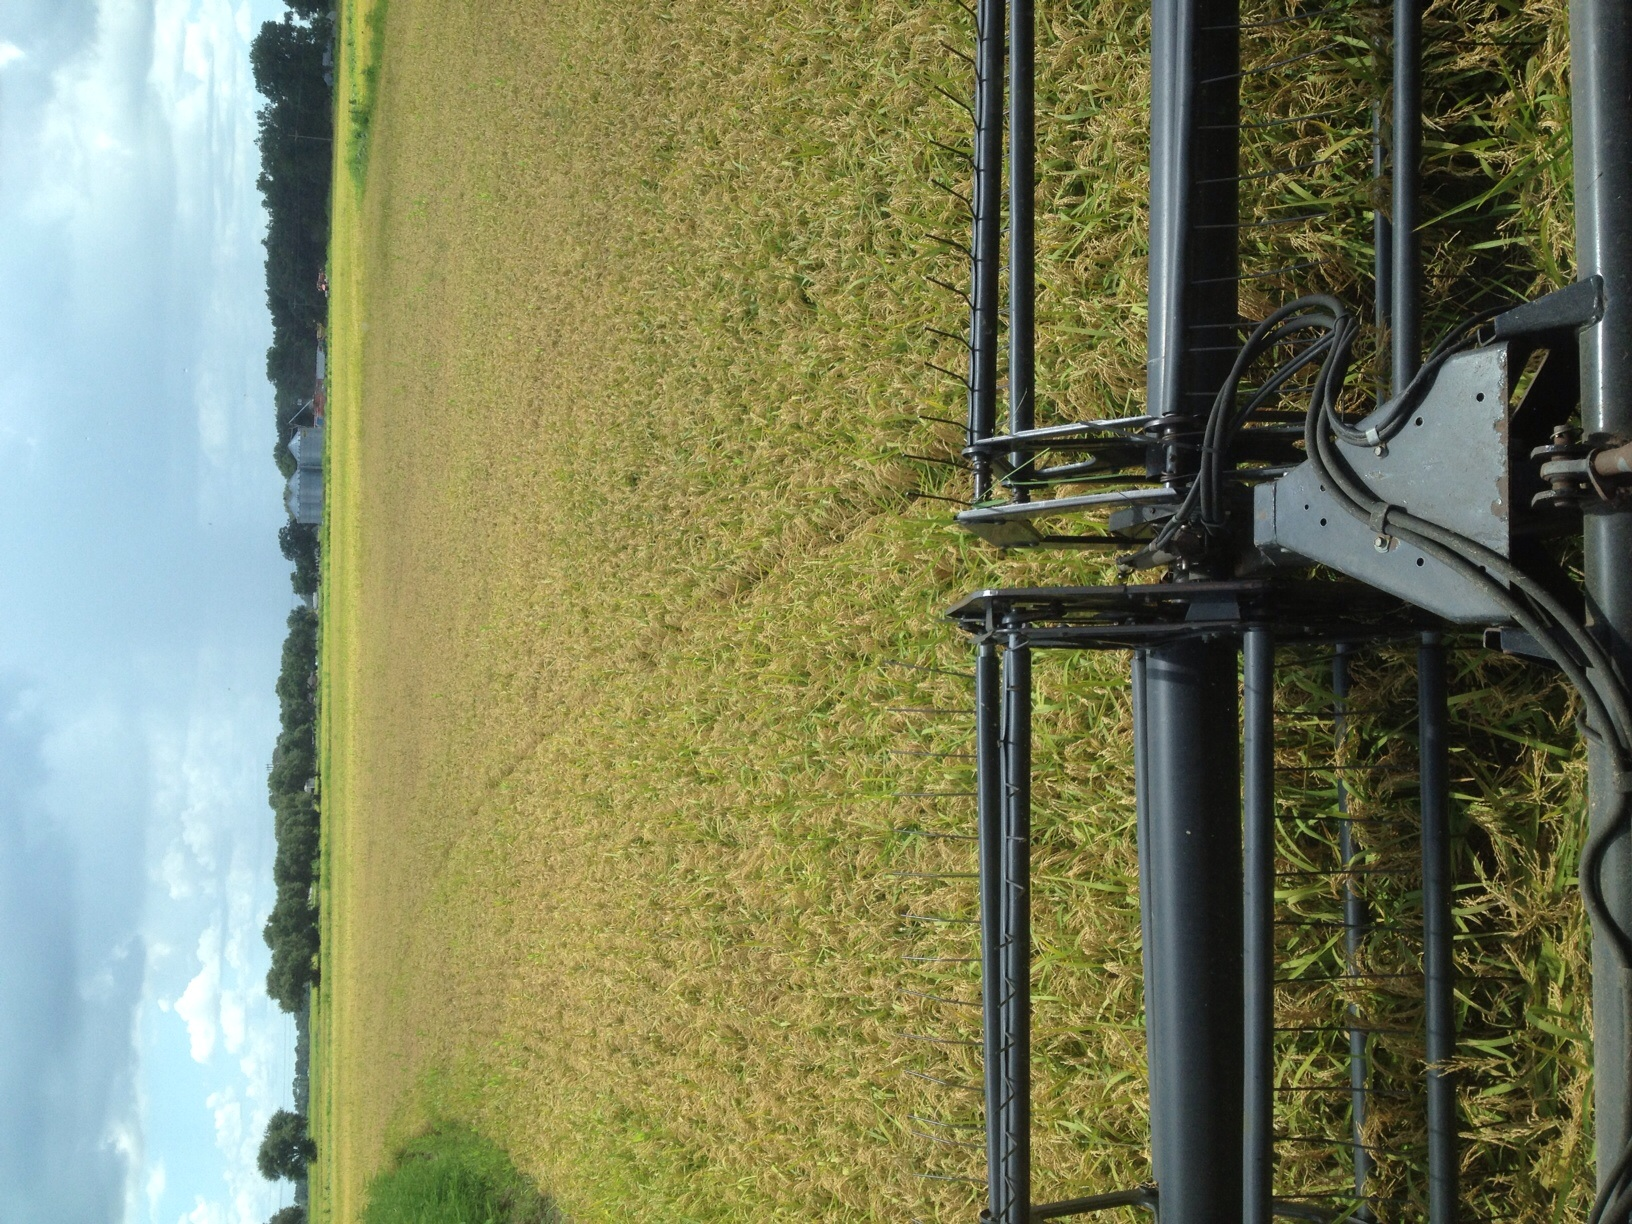 The view from the combine.